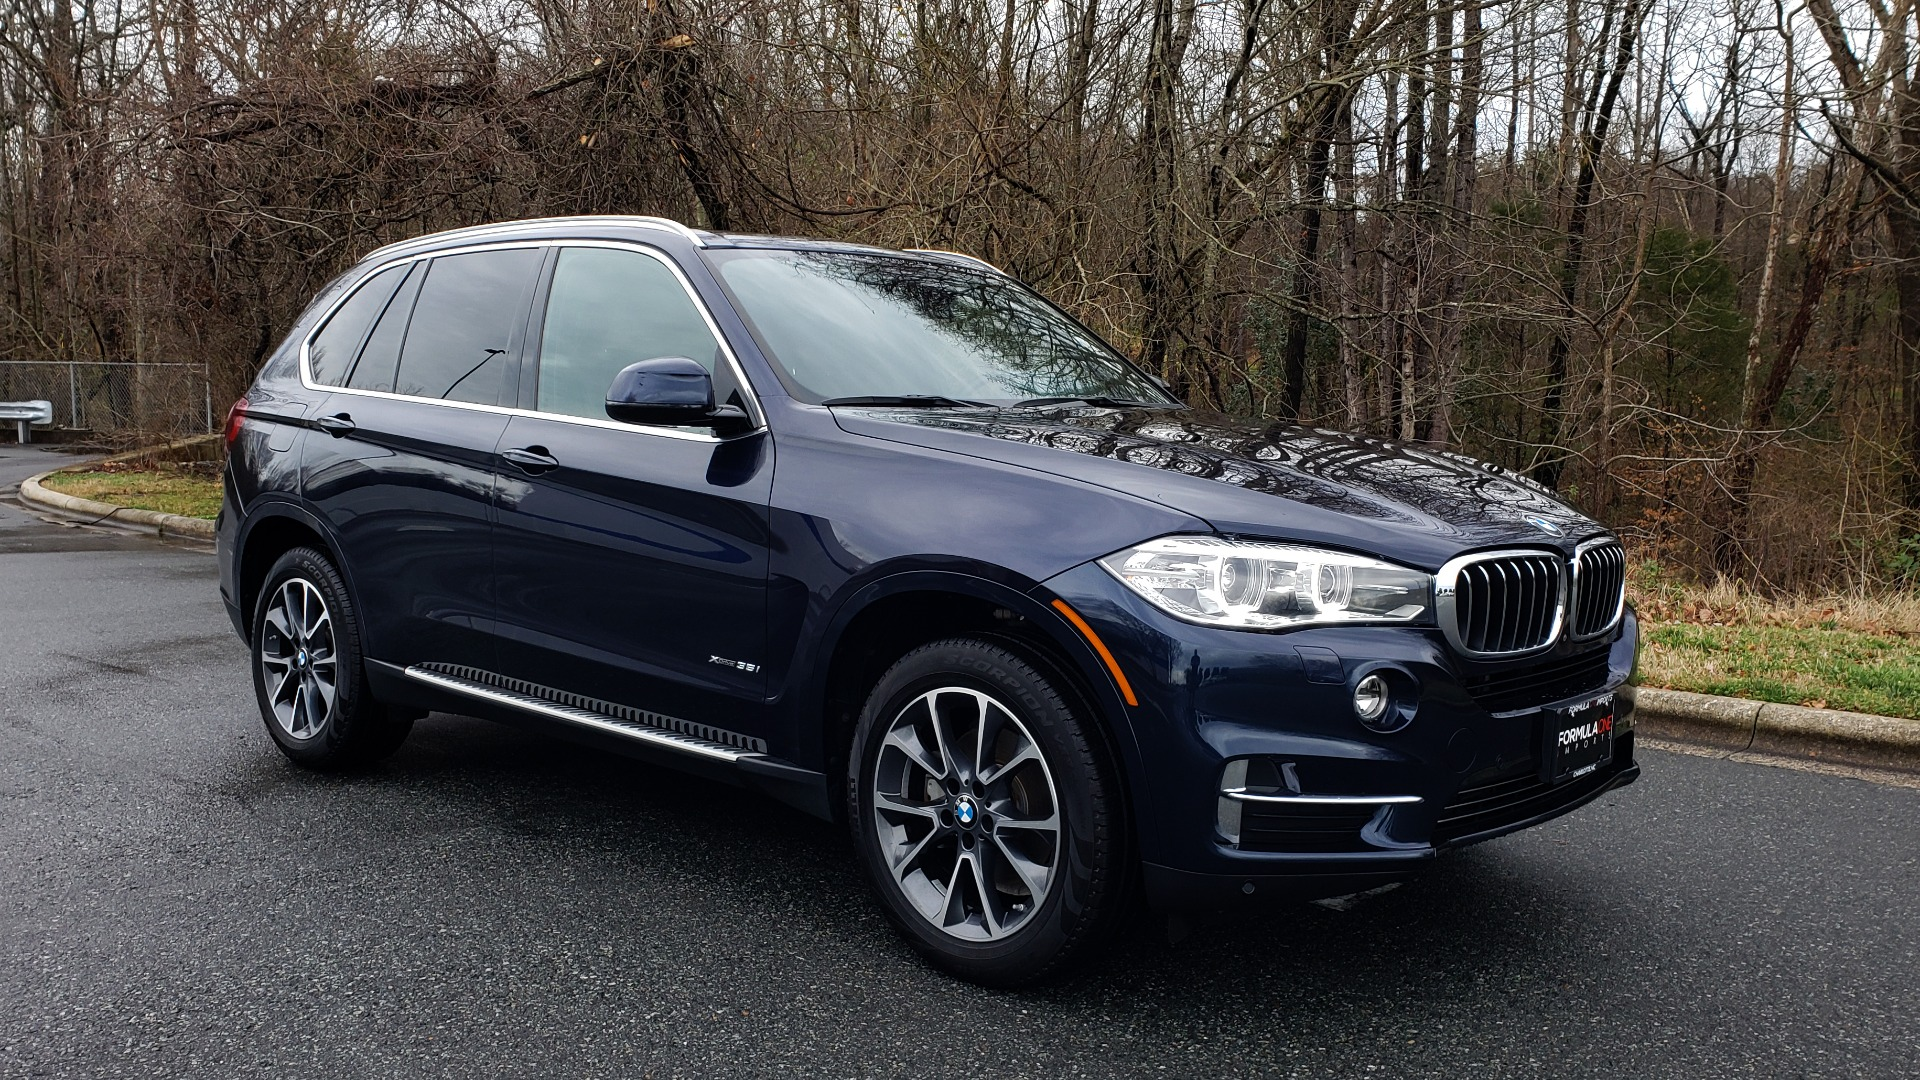 Used 2017 BMW X5 XDRIVE35I / PREMIUM / LUX / DRVR ASST PLUS / 3-ROW for sale Sold at Formula Imports in Charlotte NC 28227 4